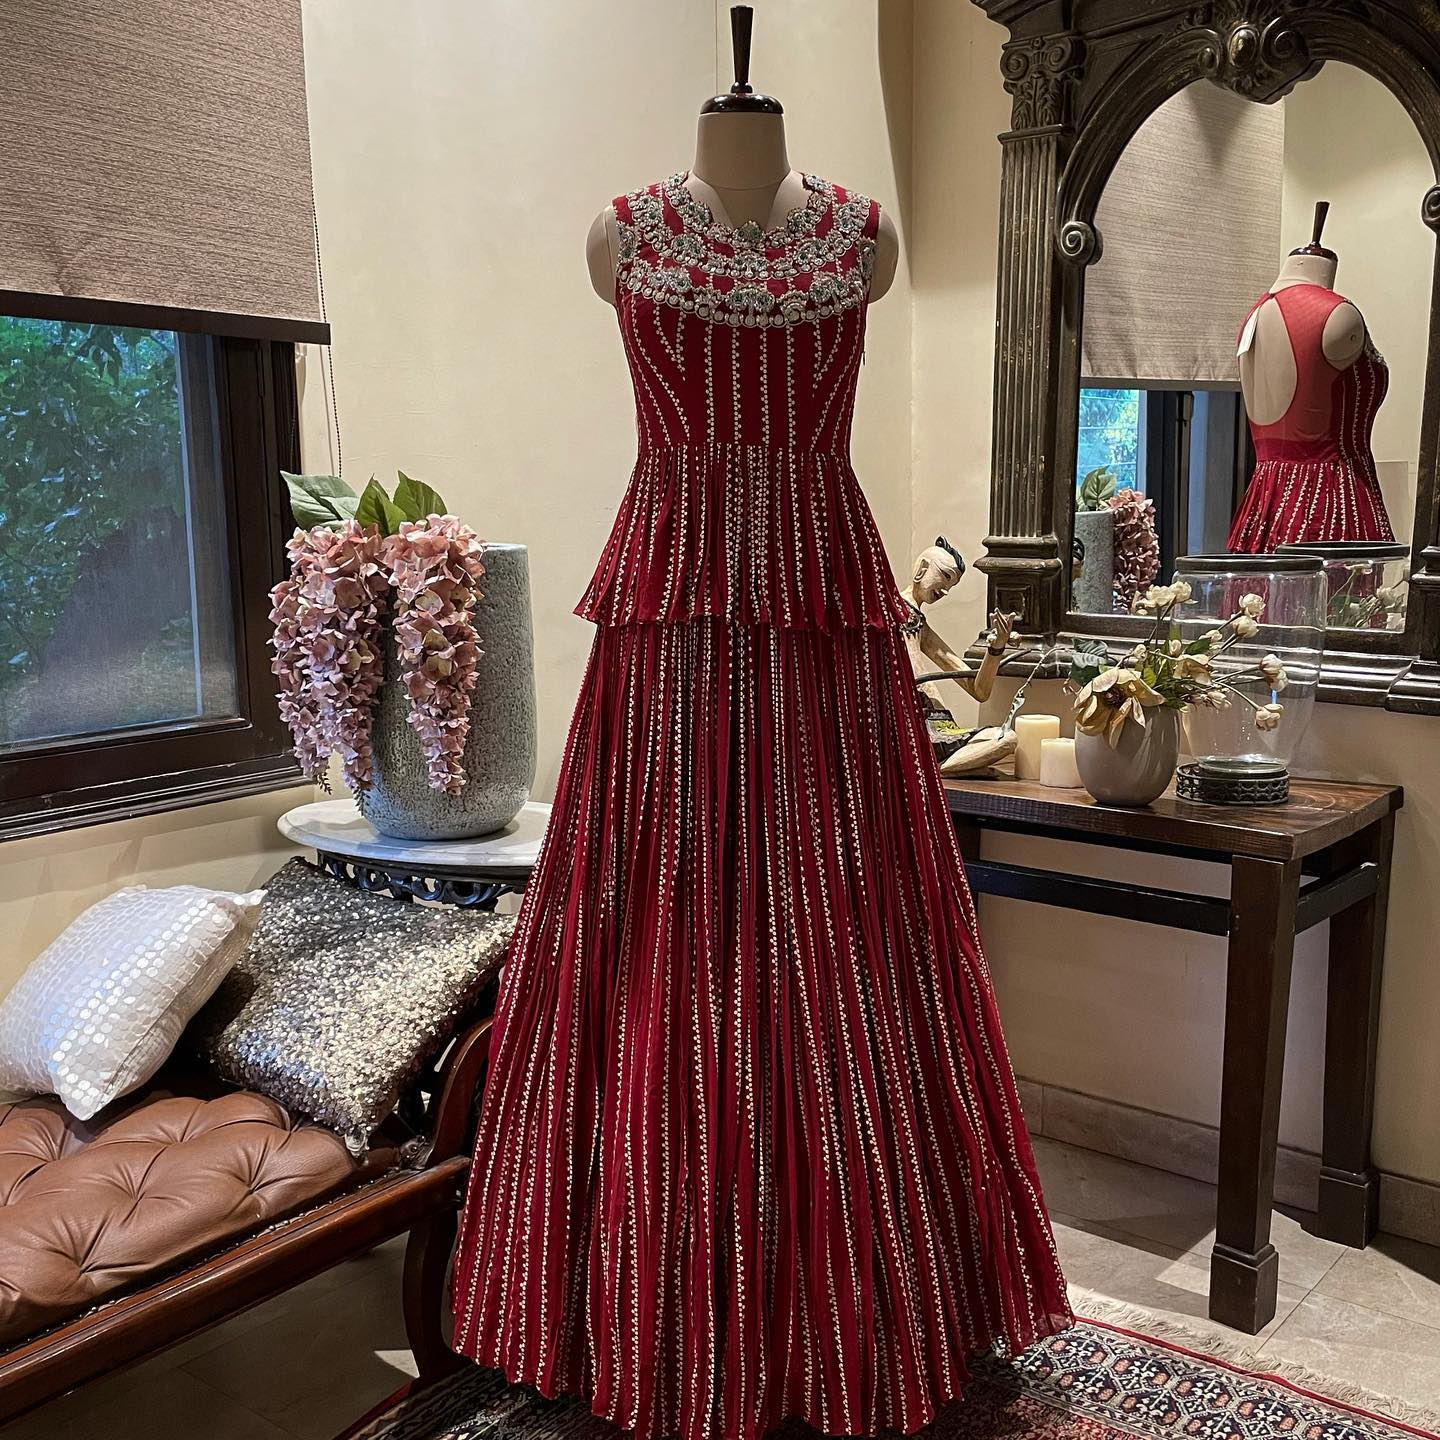 New Arrivals . Festive 2021 . . This red nukta print embroidered peplum top with printed skirt from  Festive 2021 collection. . 2021-05-21